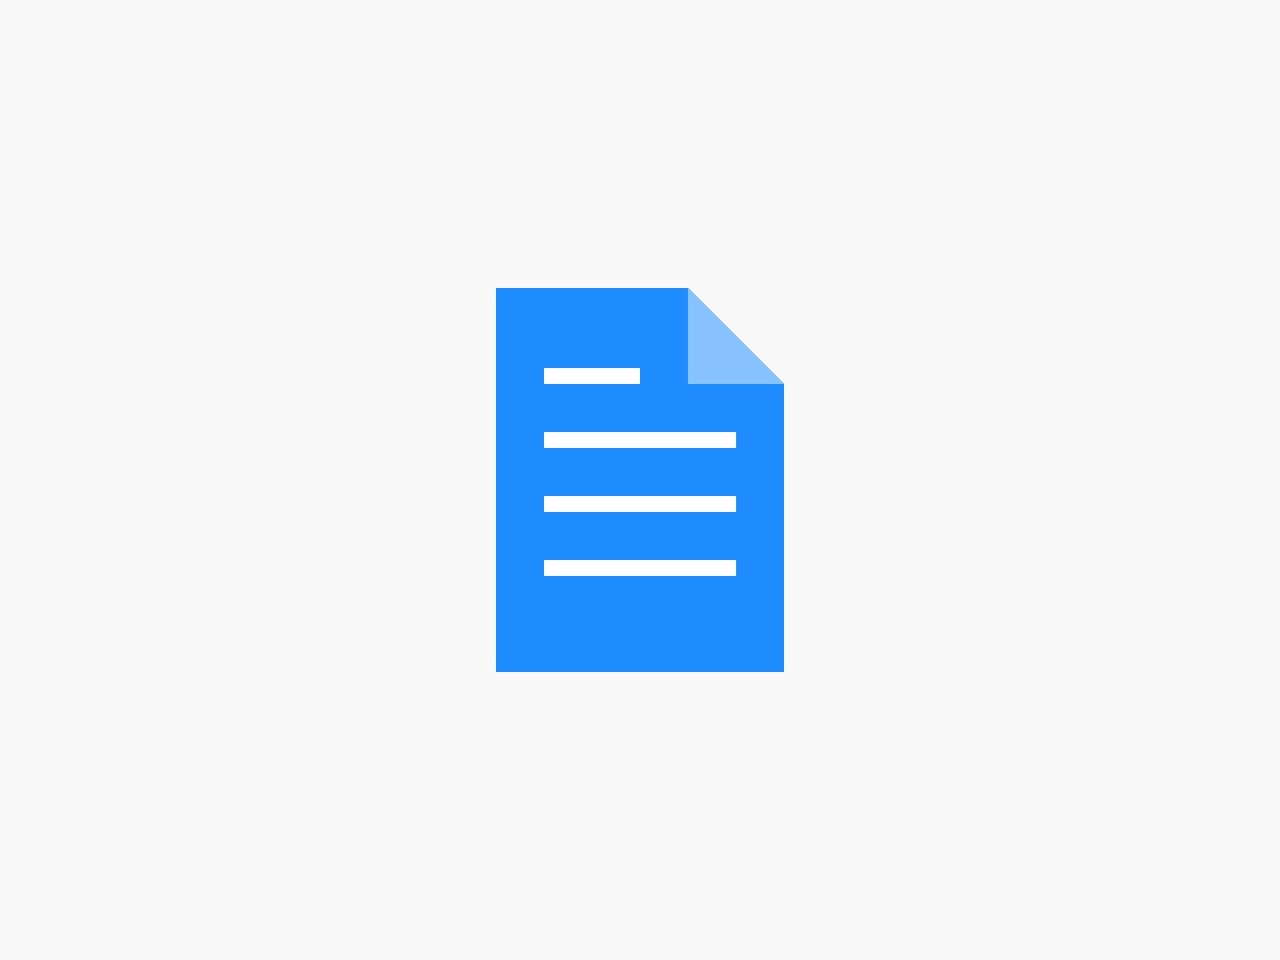 Louis Vuitton presents new shoe collection with Dree Hemingway